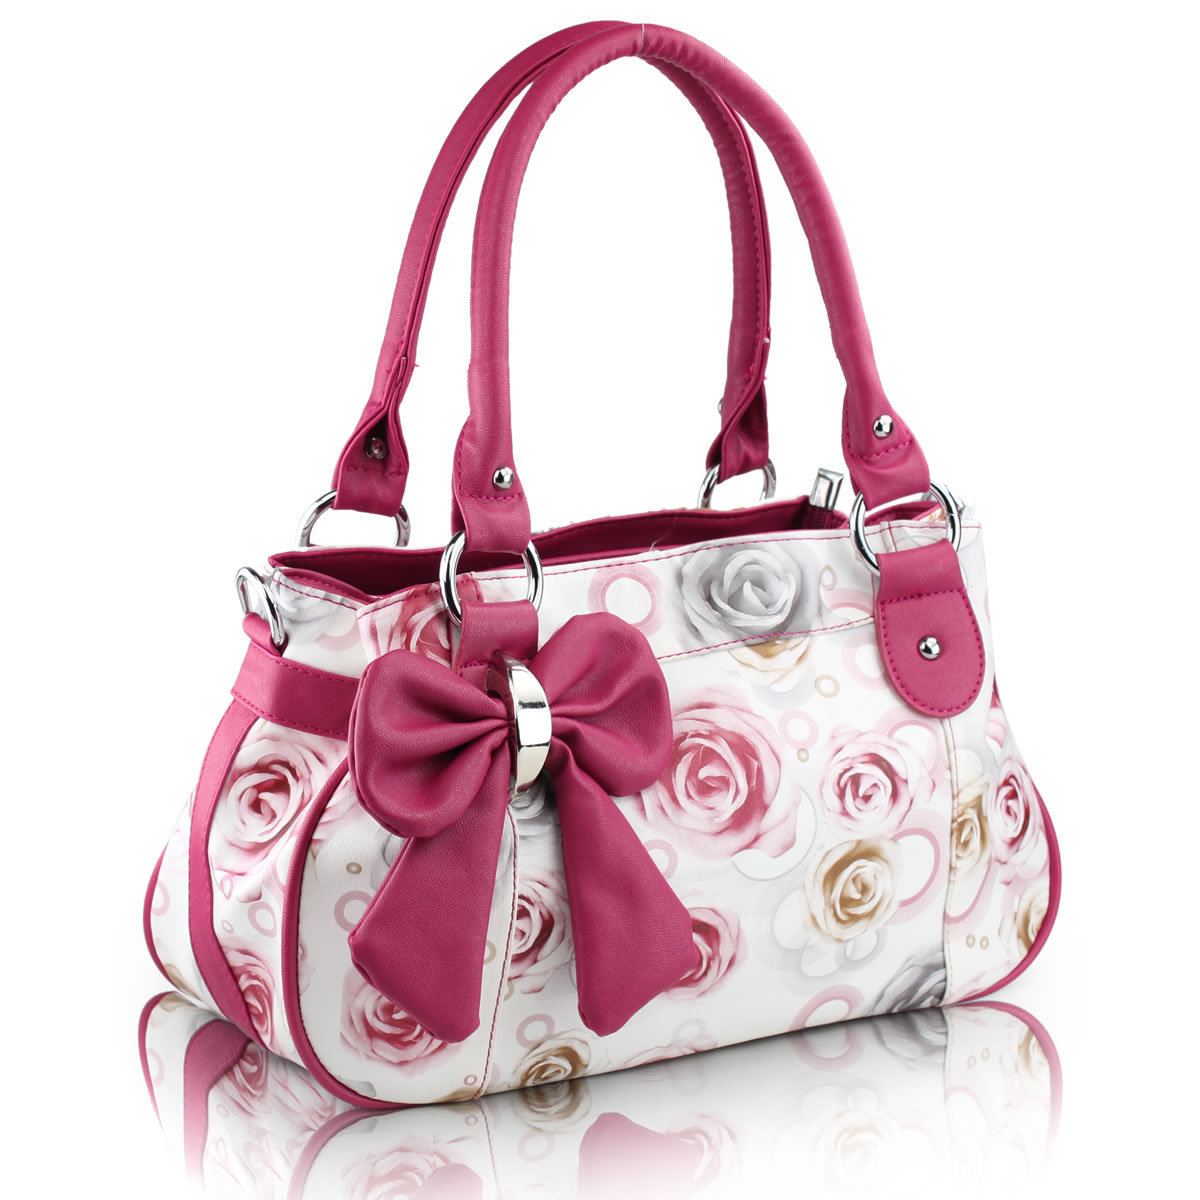 169_ladies-handbags-141